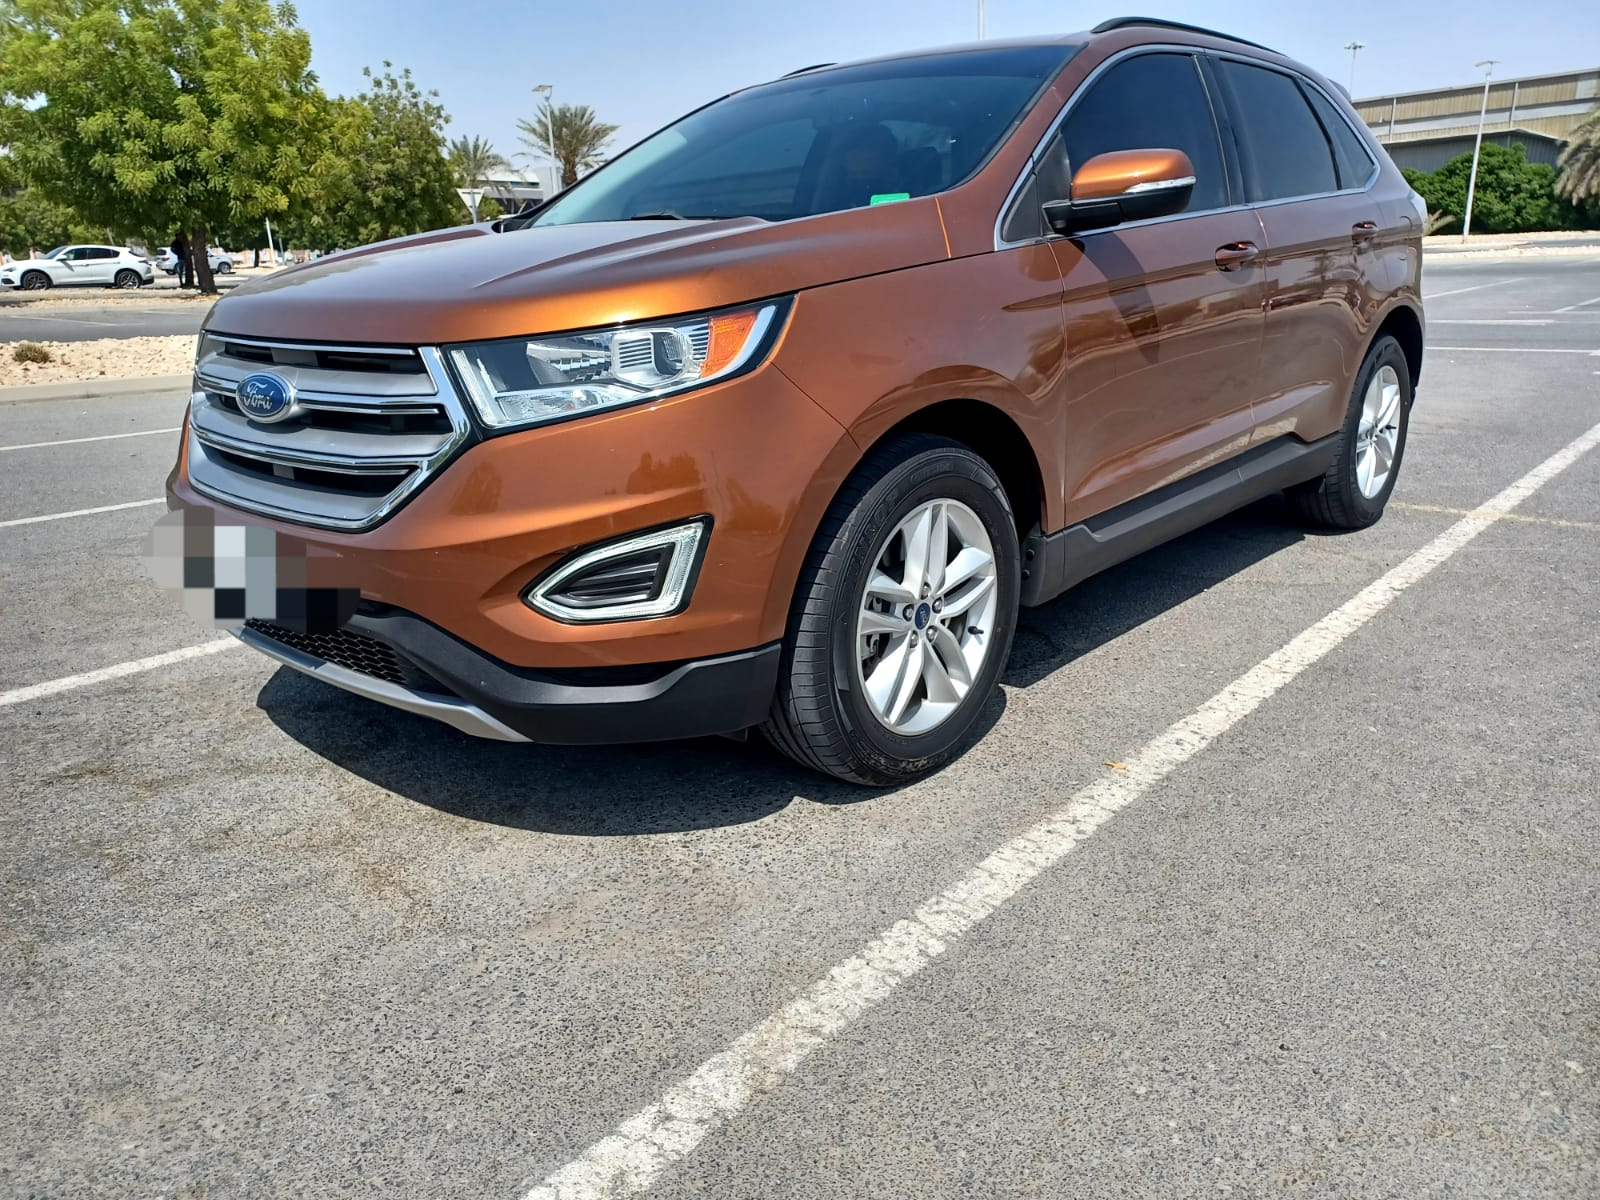 Used Ford Edge 2.0T SEL AWD 2017 For Sale In Dubai